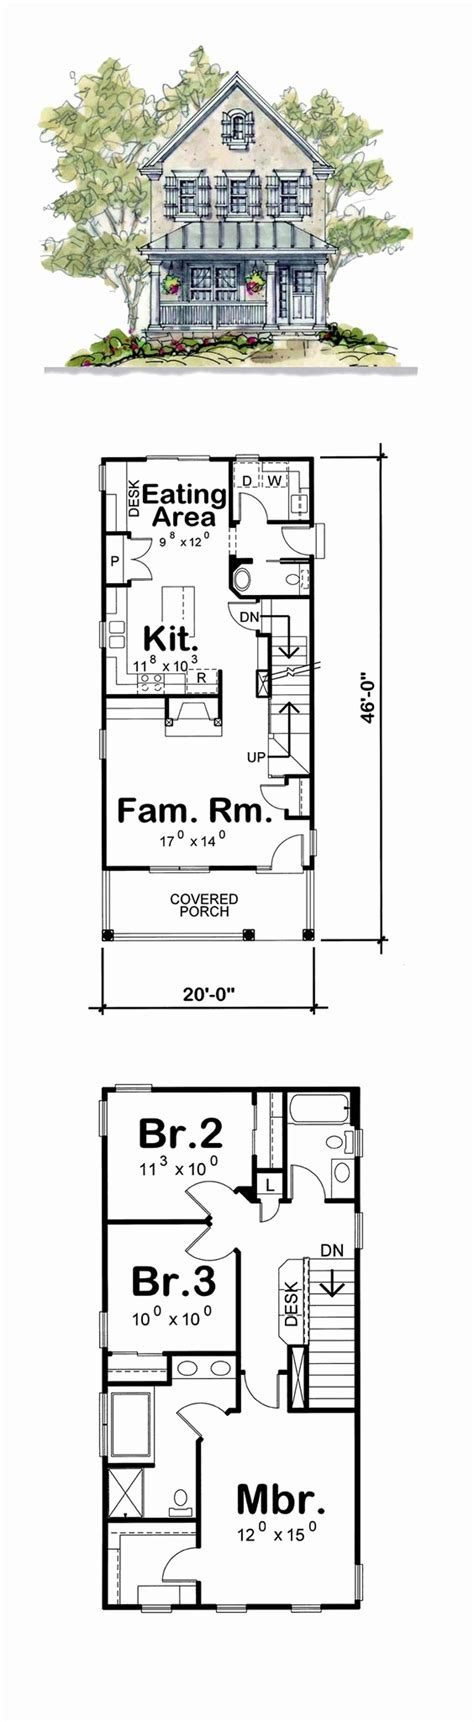 narrow lot 2 story house plans inspirational two story house plans for shallow lots house plan